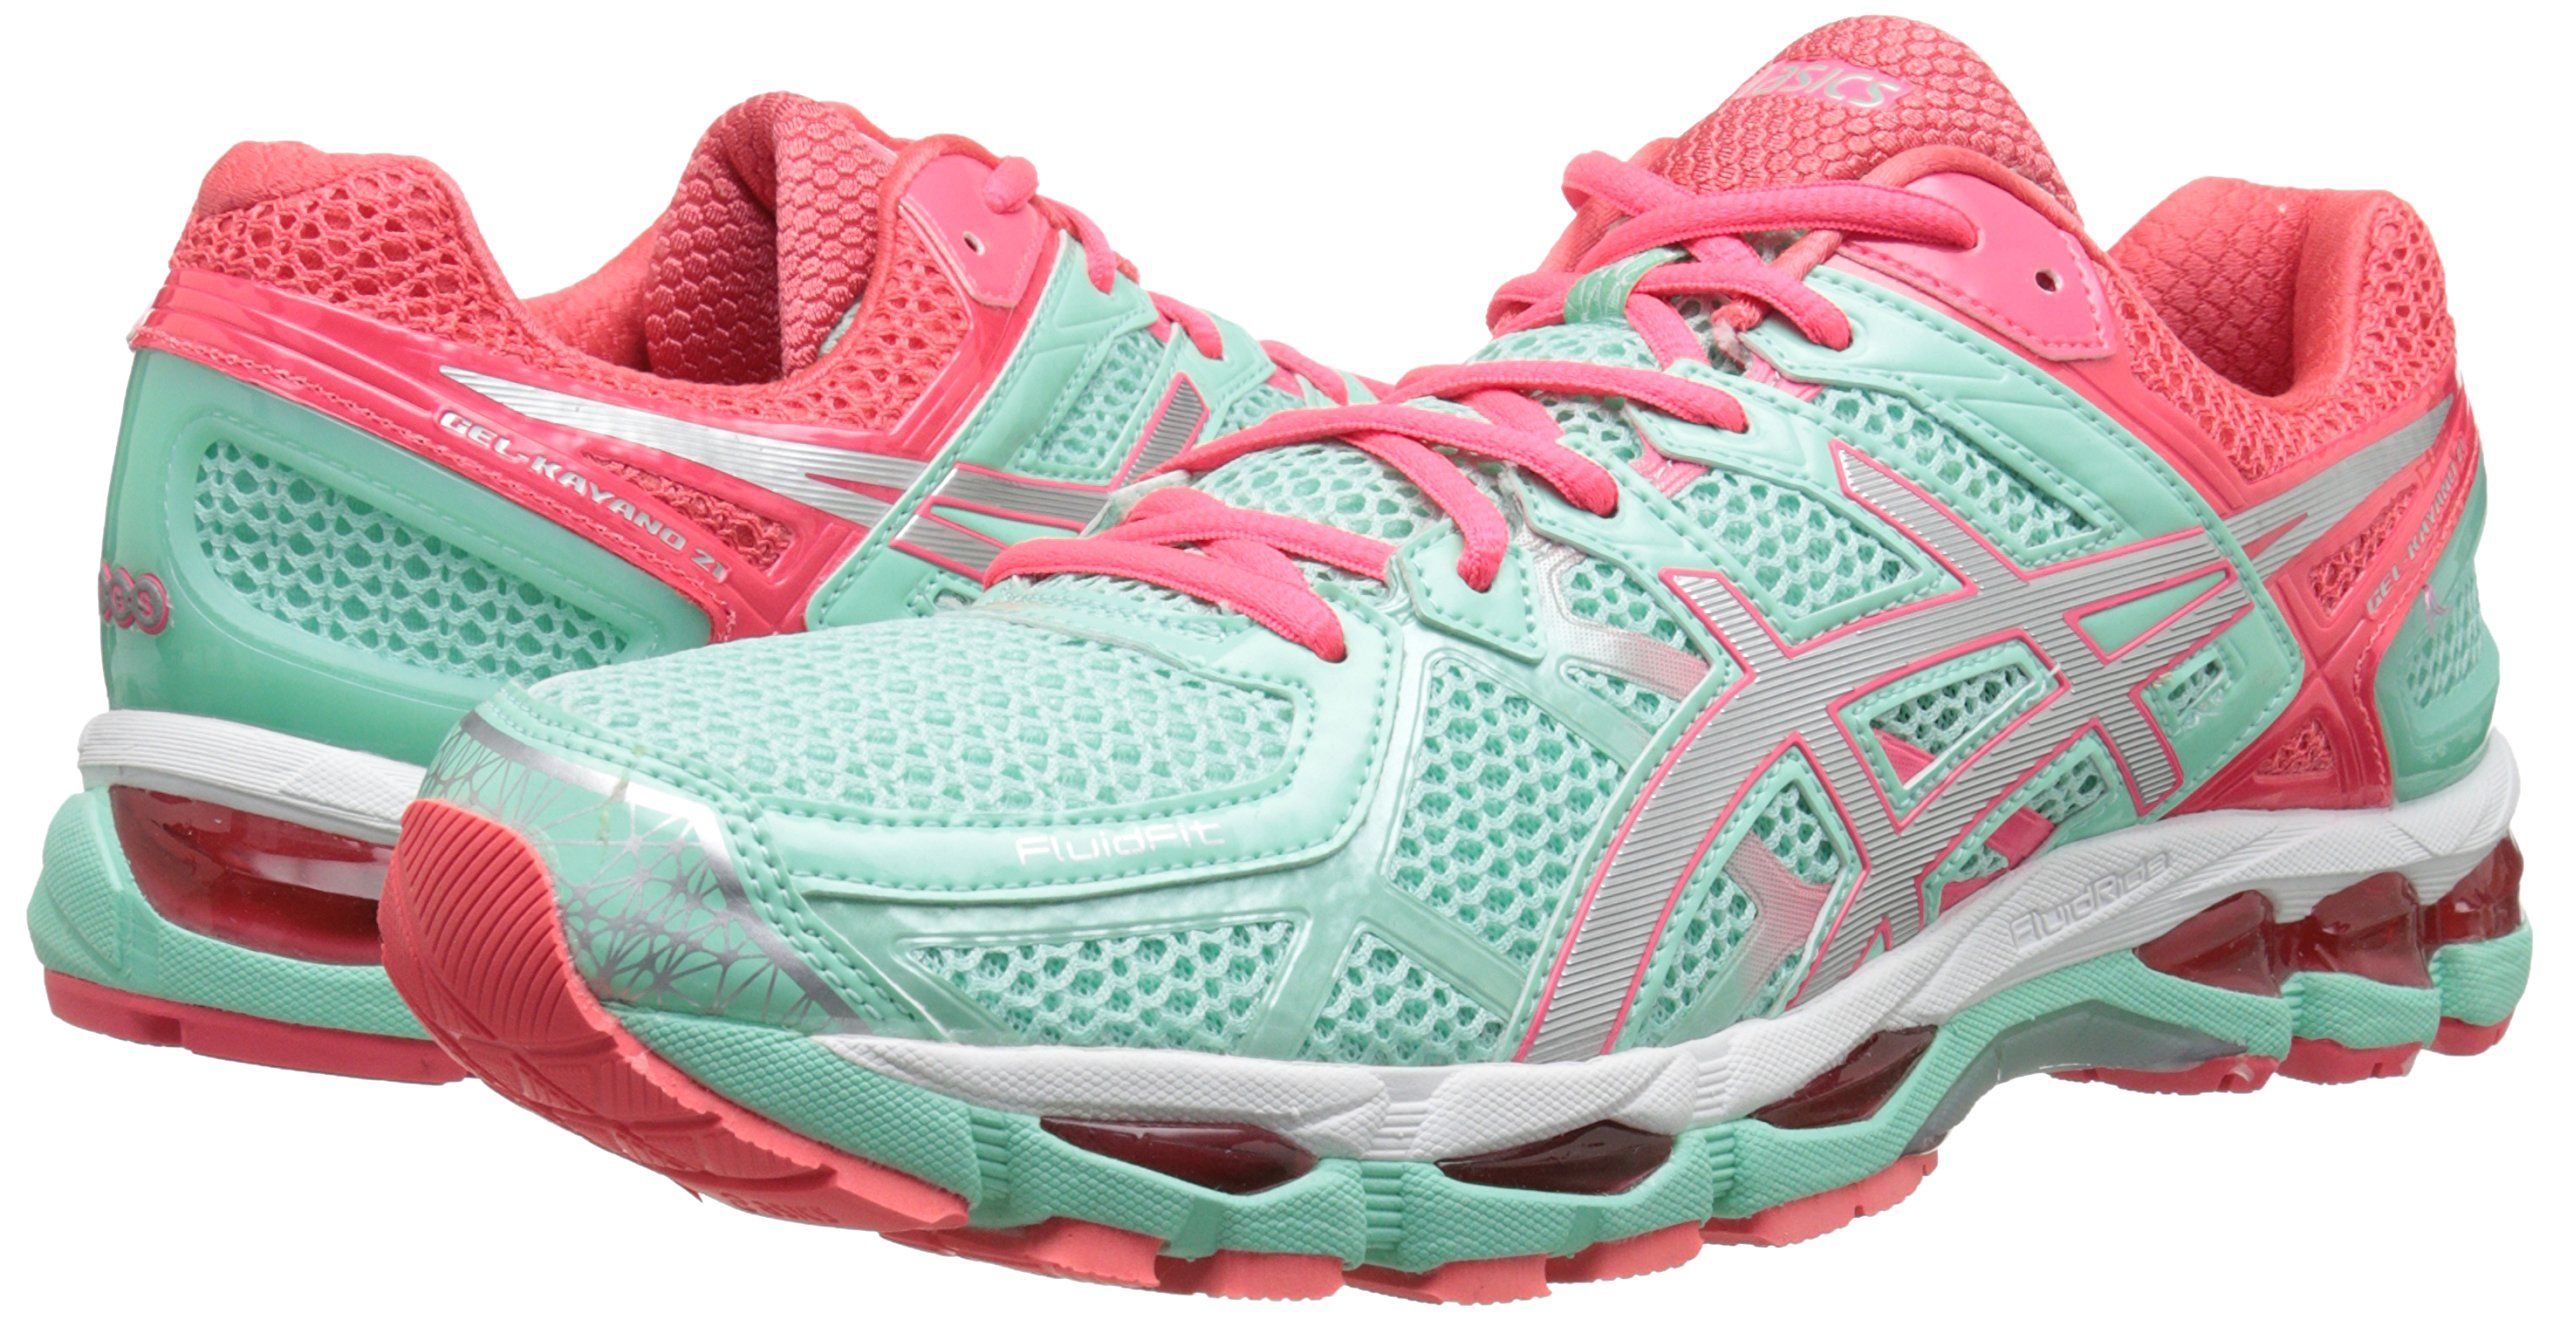 new style d98a1 831ca Pin on Asics Kayano 21 Running Shoes